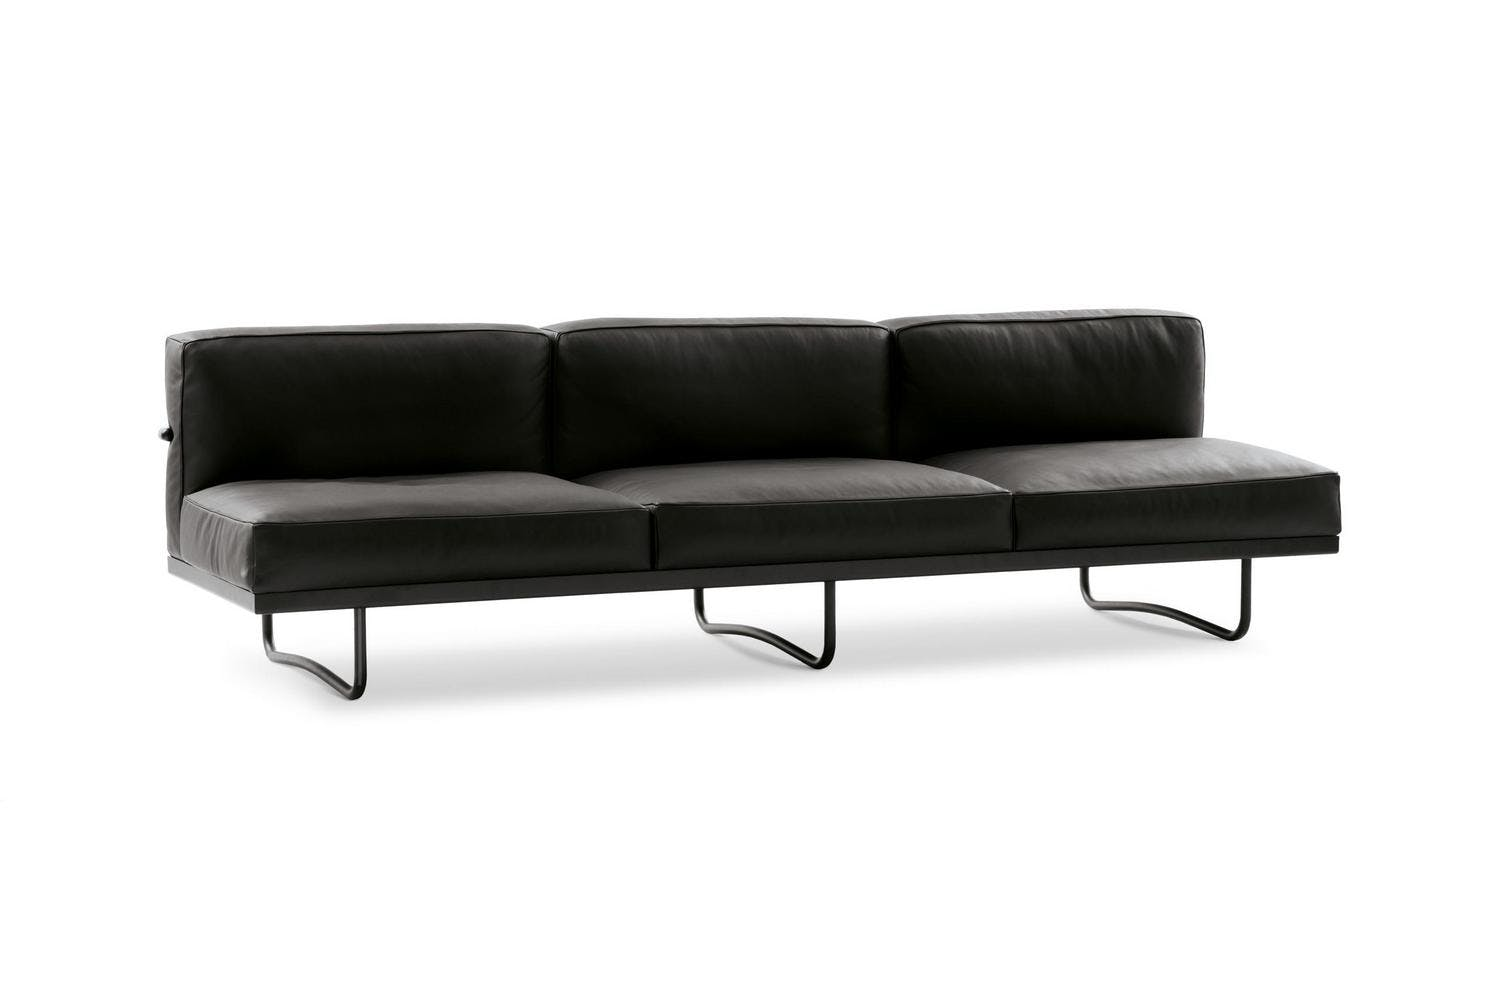 Lc5 sofa by le corbusier pierre jeanneret charlotte for Le corbusier sofa nachbau